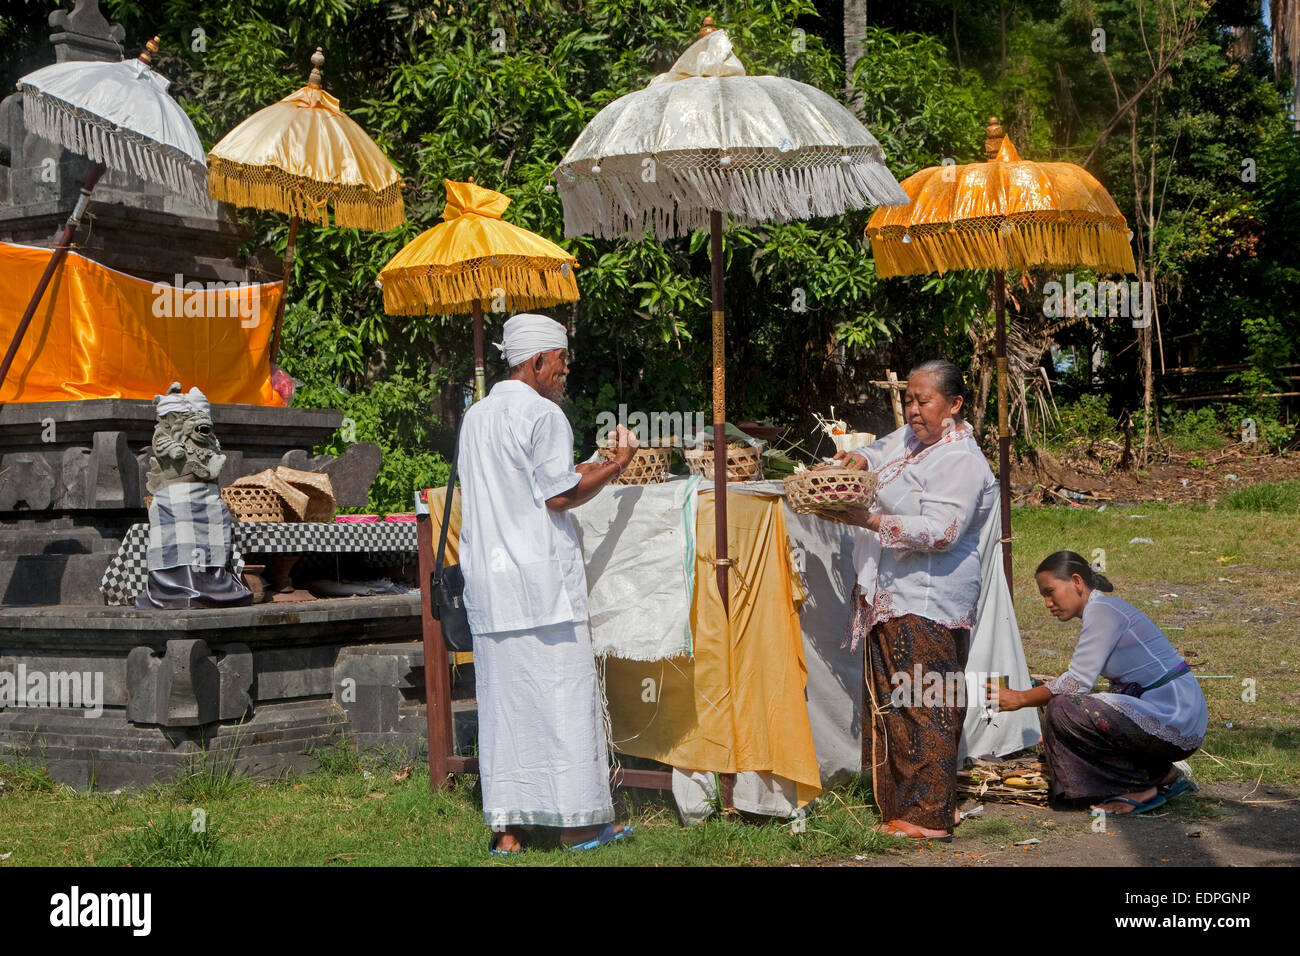 Indonesian Hindus preparing for Nyepi Day, the Balinese day of Silence on the island Bali, Indonesia - Stock Image